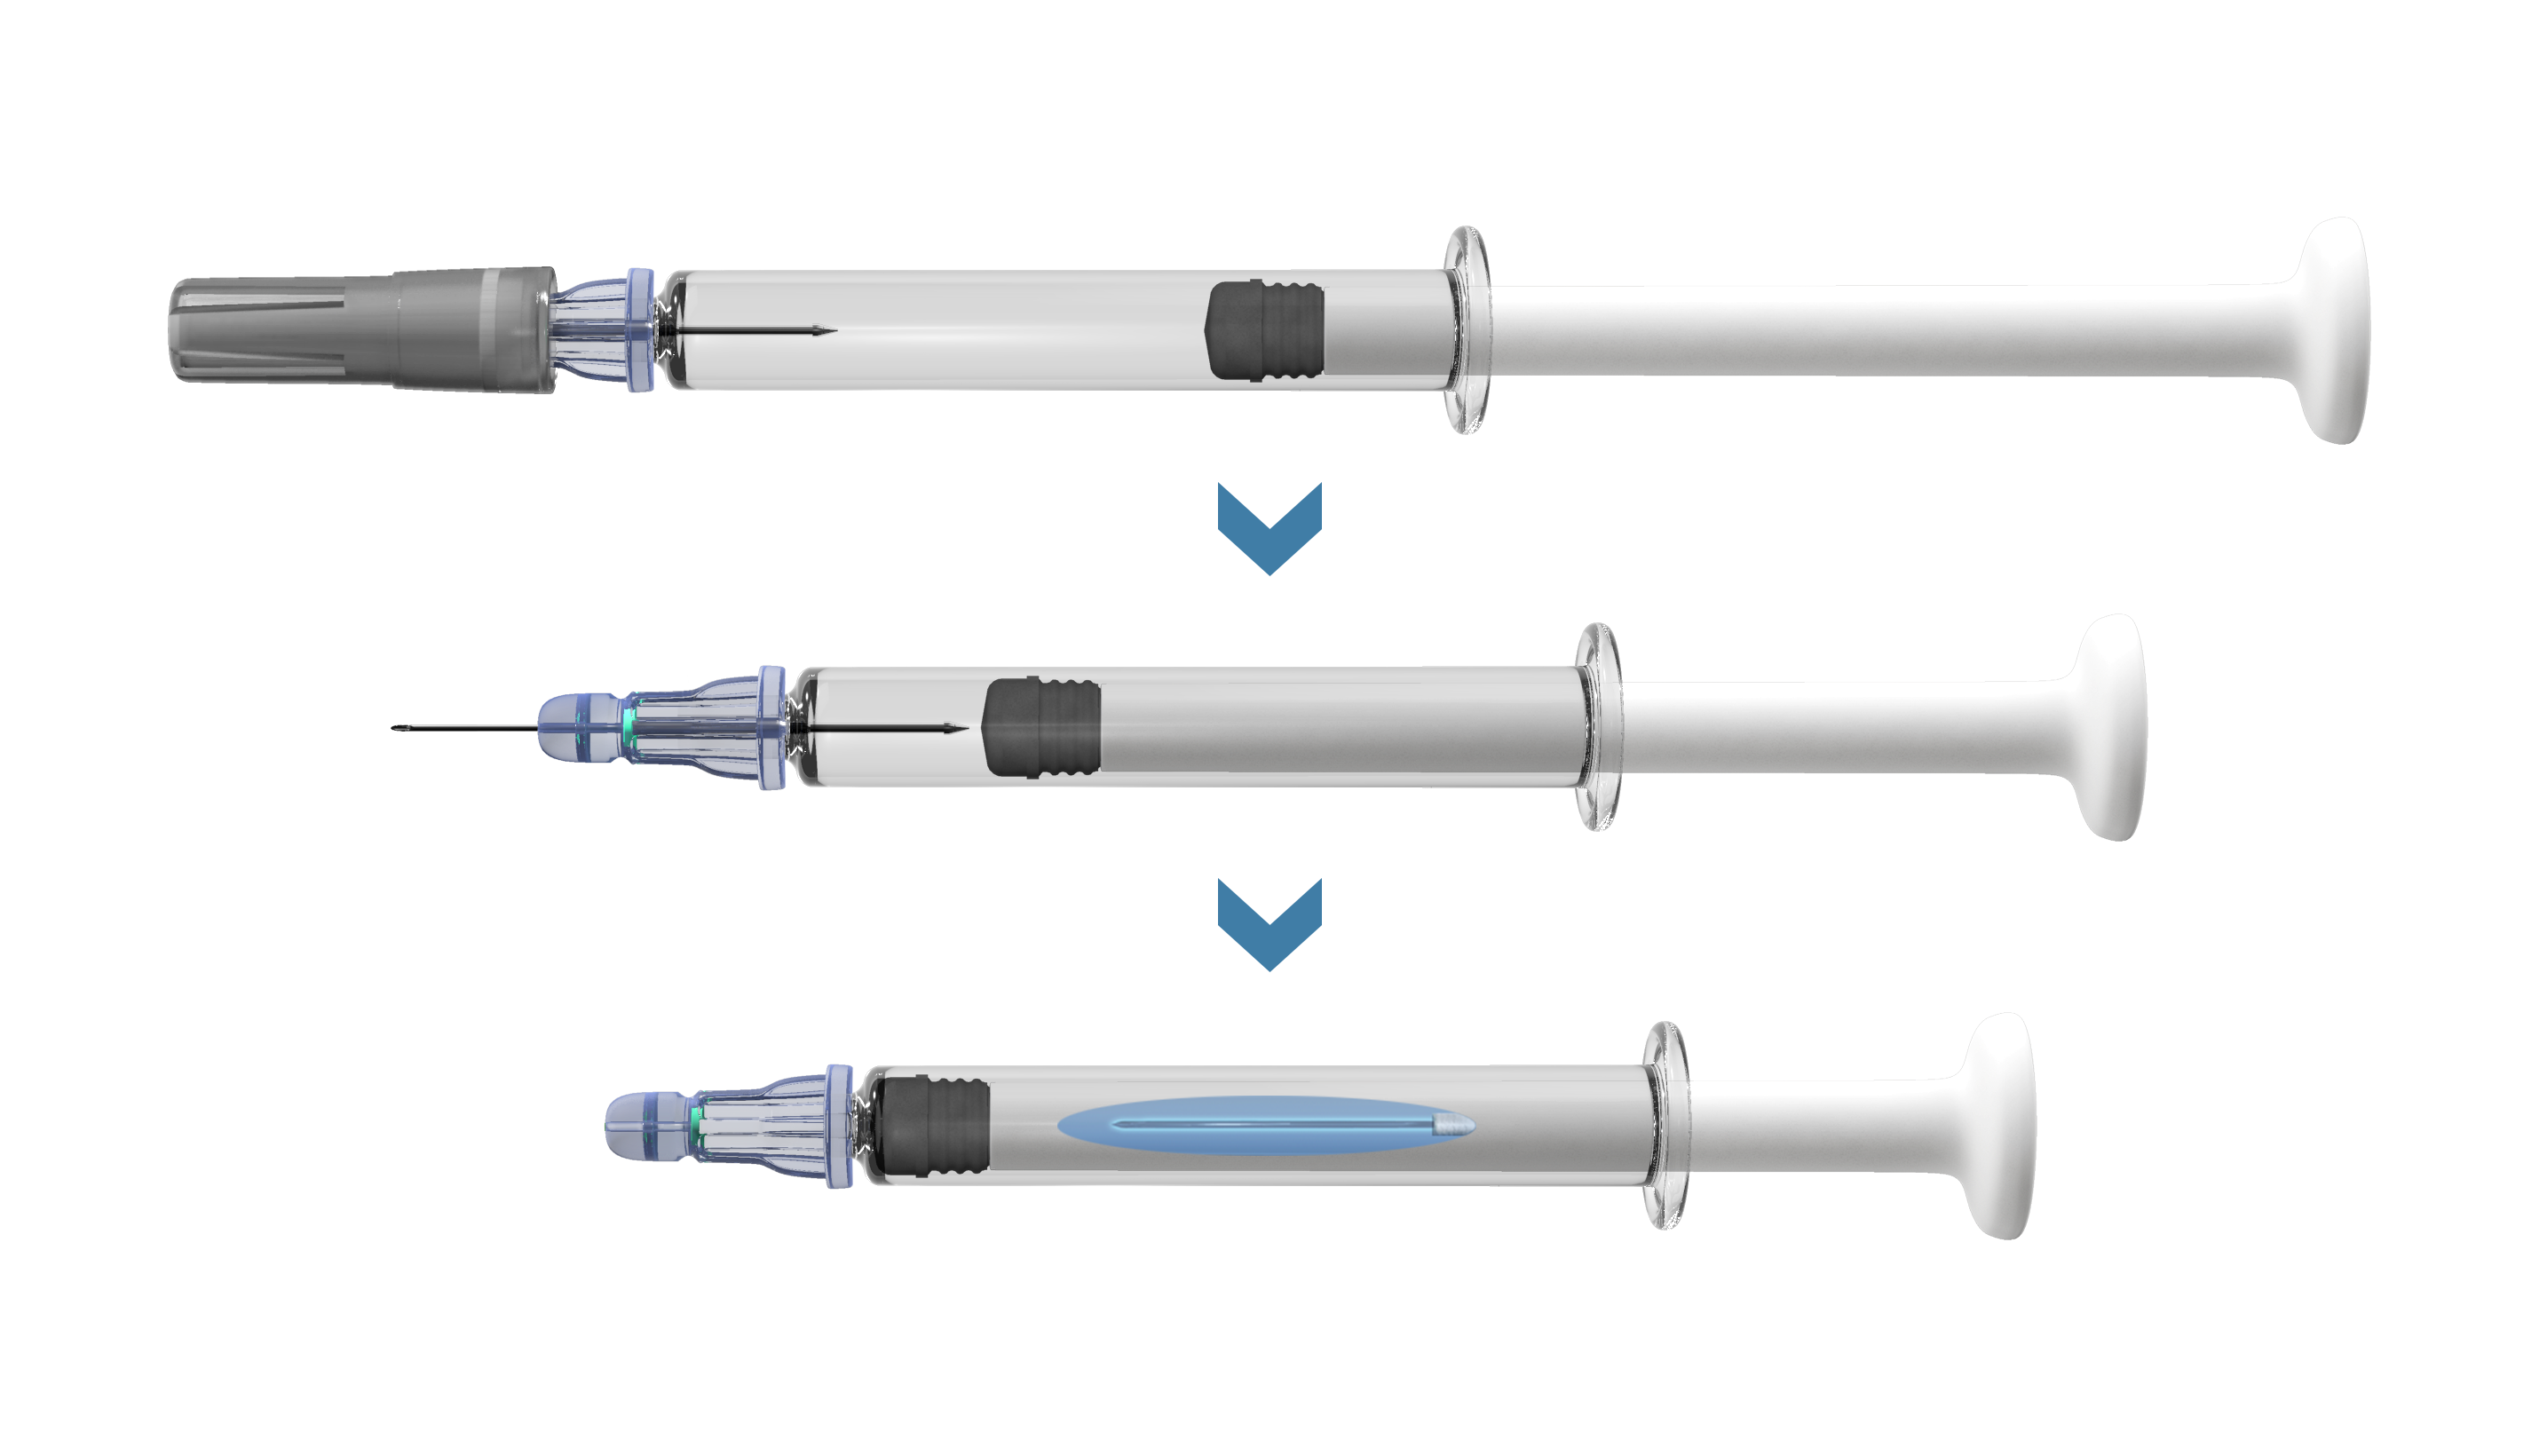 Figure 2: With the Credence Companion®, the user performs the injection, receives end-of-dose cues and then the needle automatically retracts into the syringe, preventing re-use.